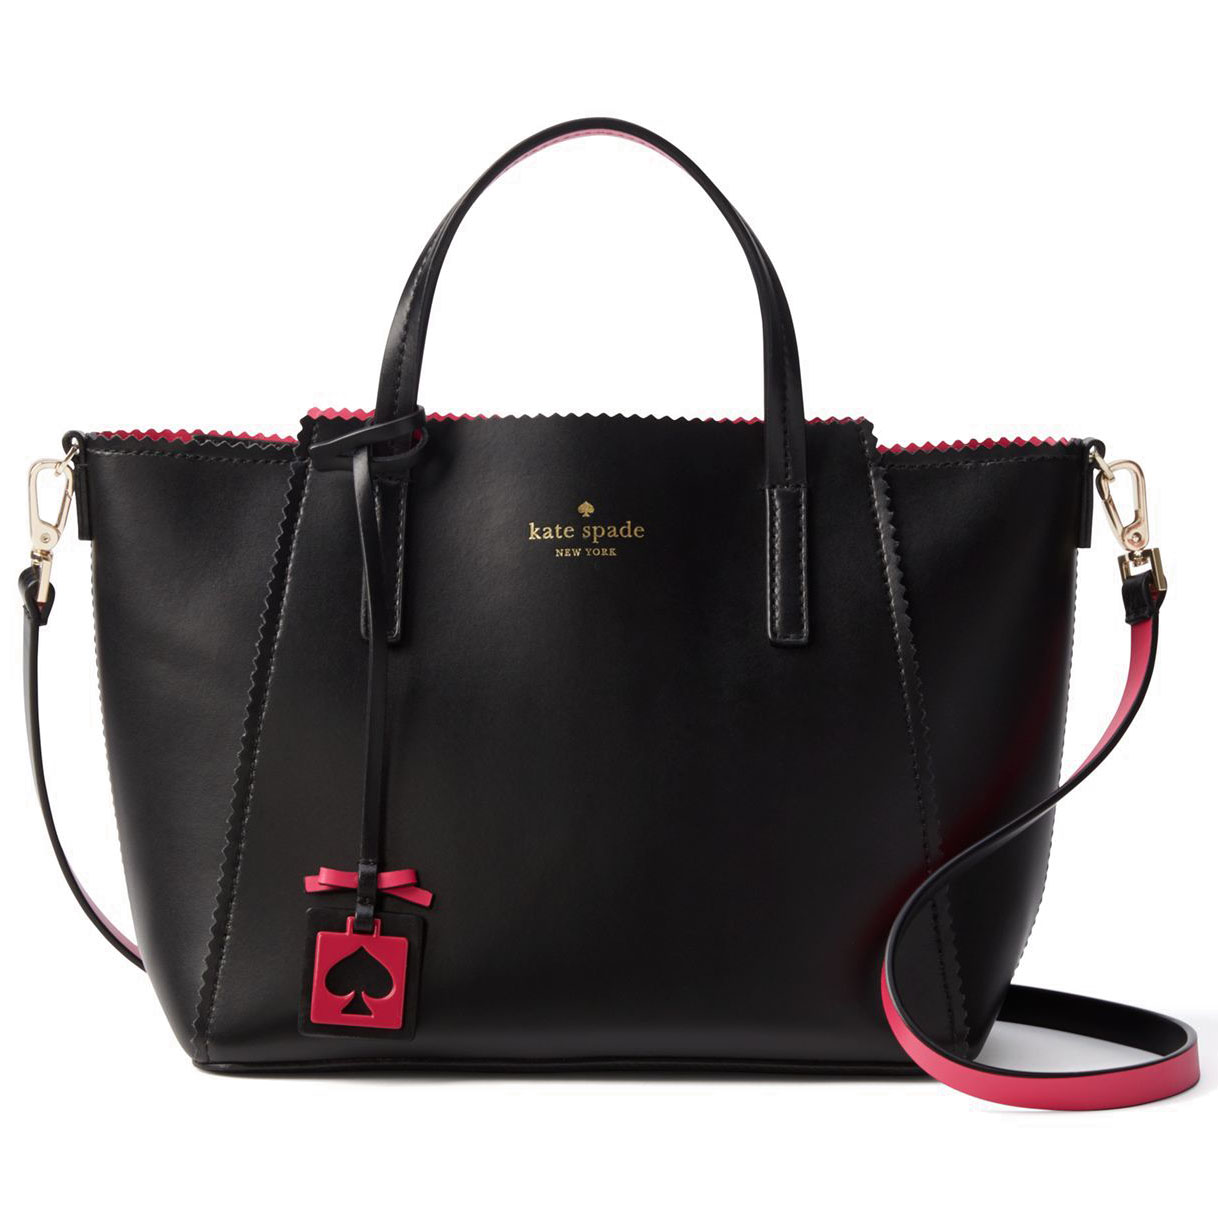 Kate Spade Ivy Drive Small Loryn Crossbody Bag Black / Sweetheart Pink # WKRU3239